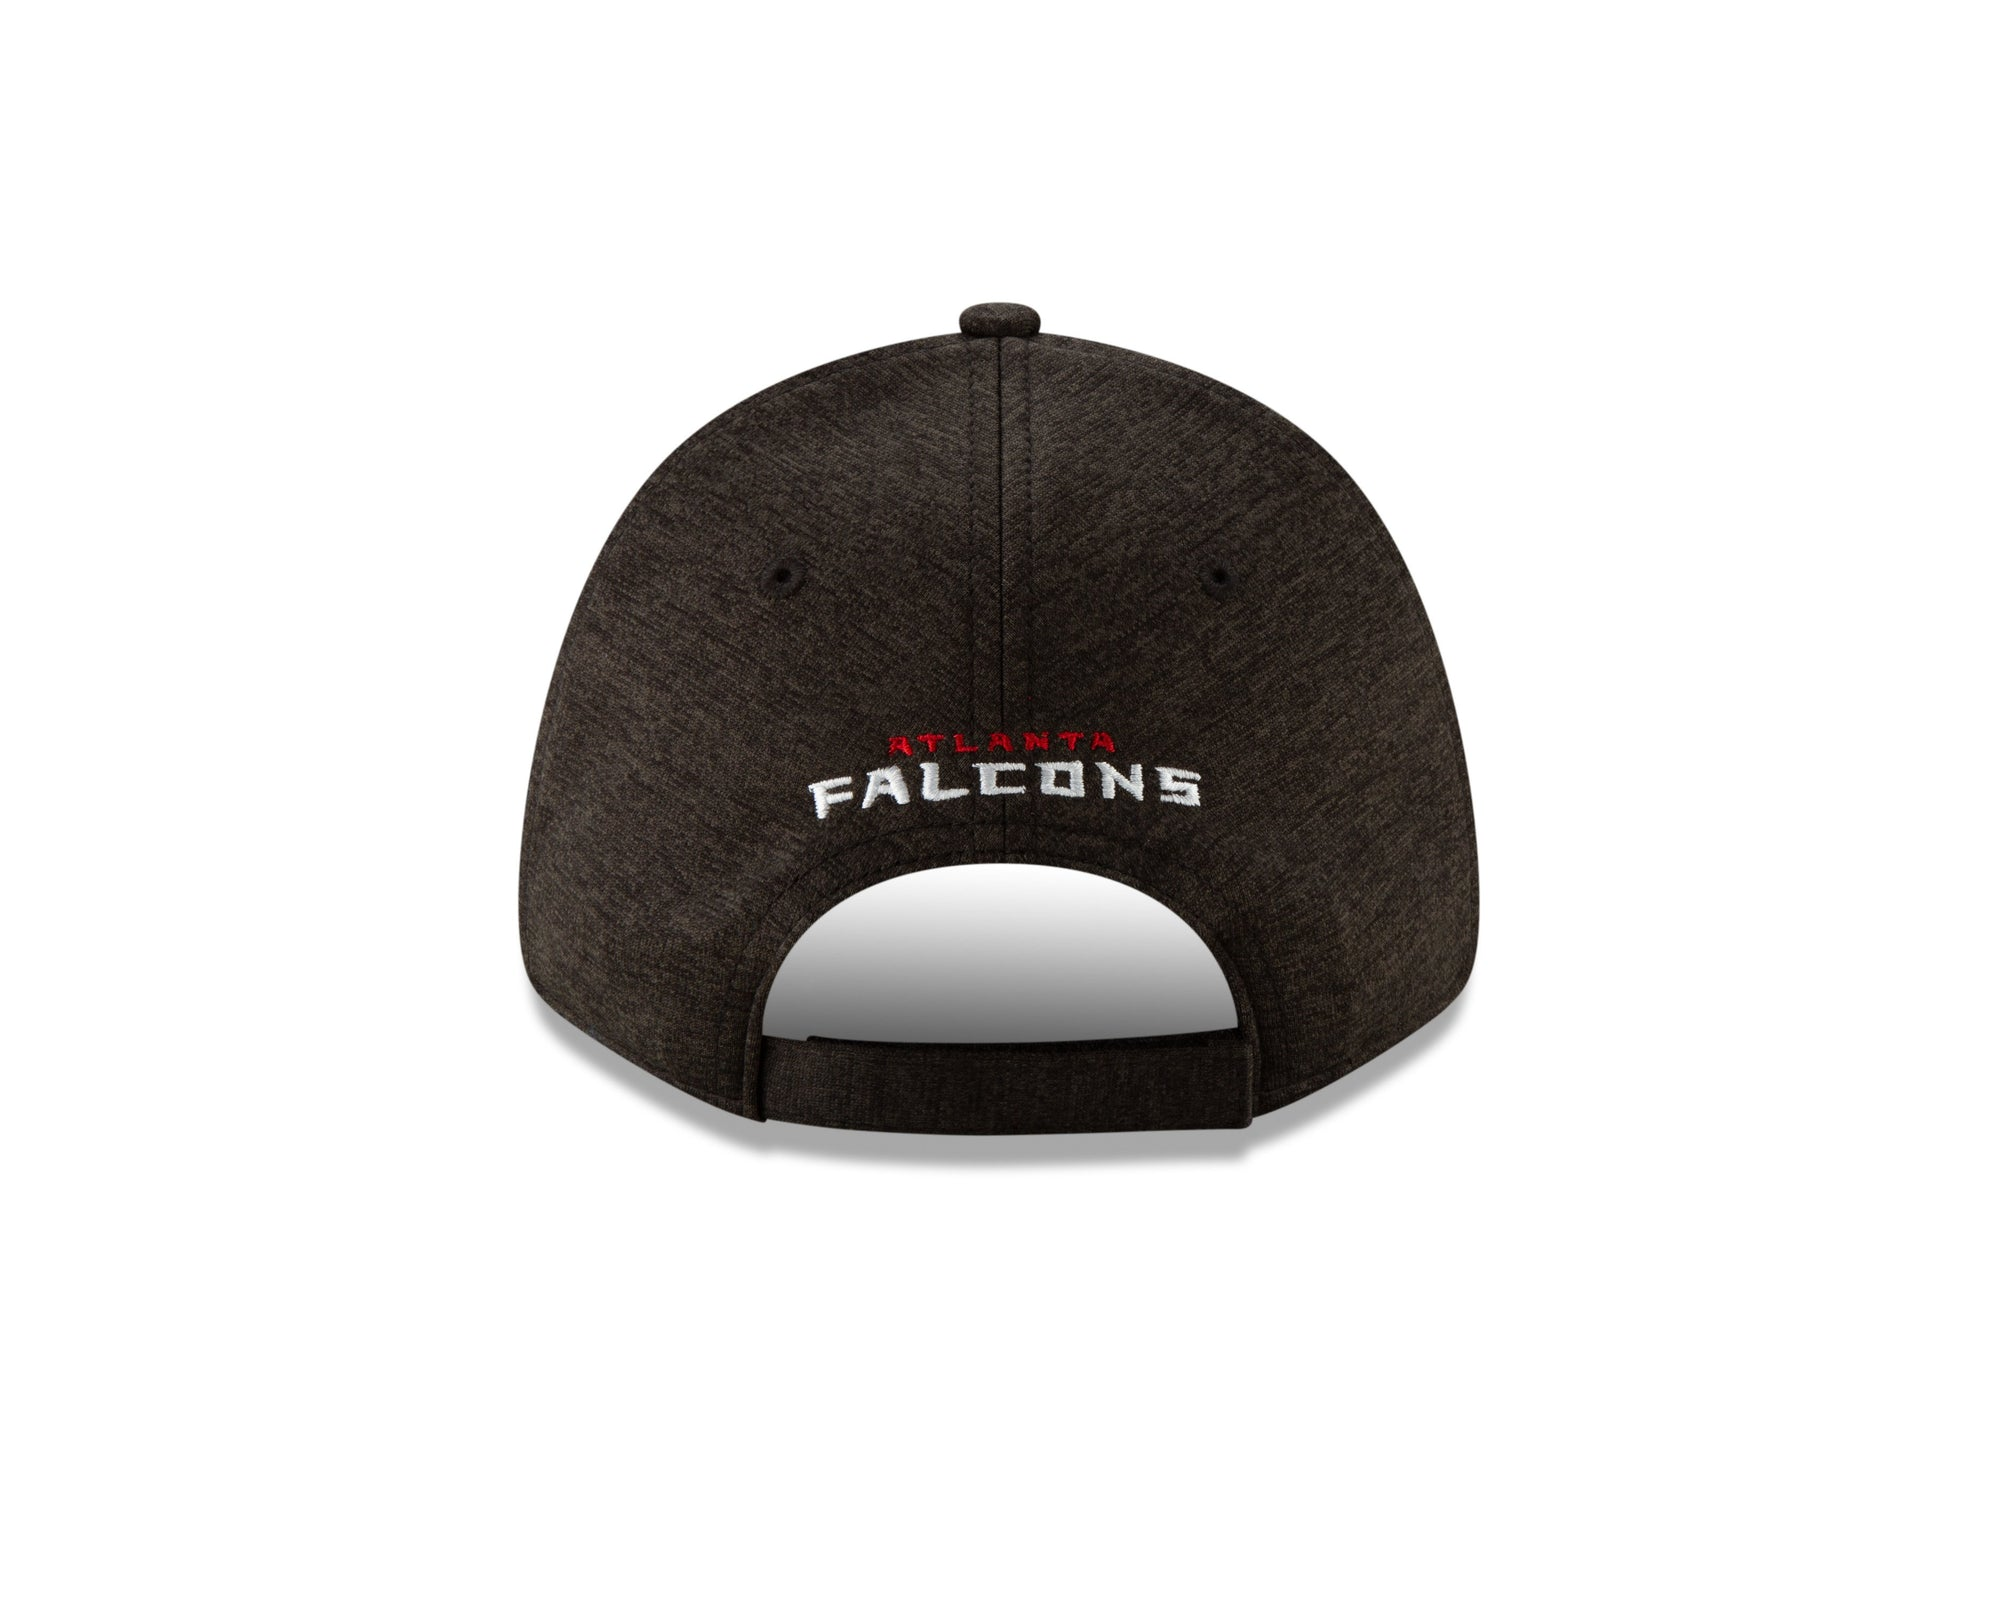 NFL Atlanta Falcons New Era Visor Trim 9FORTY - Black